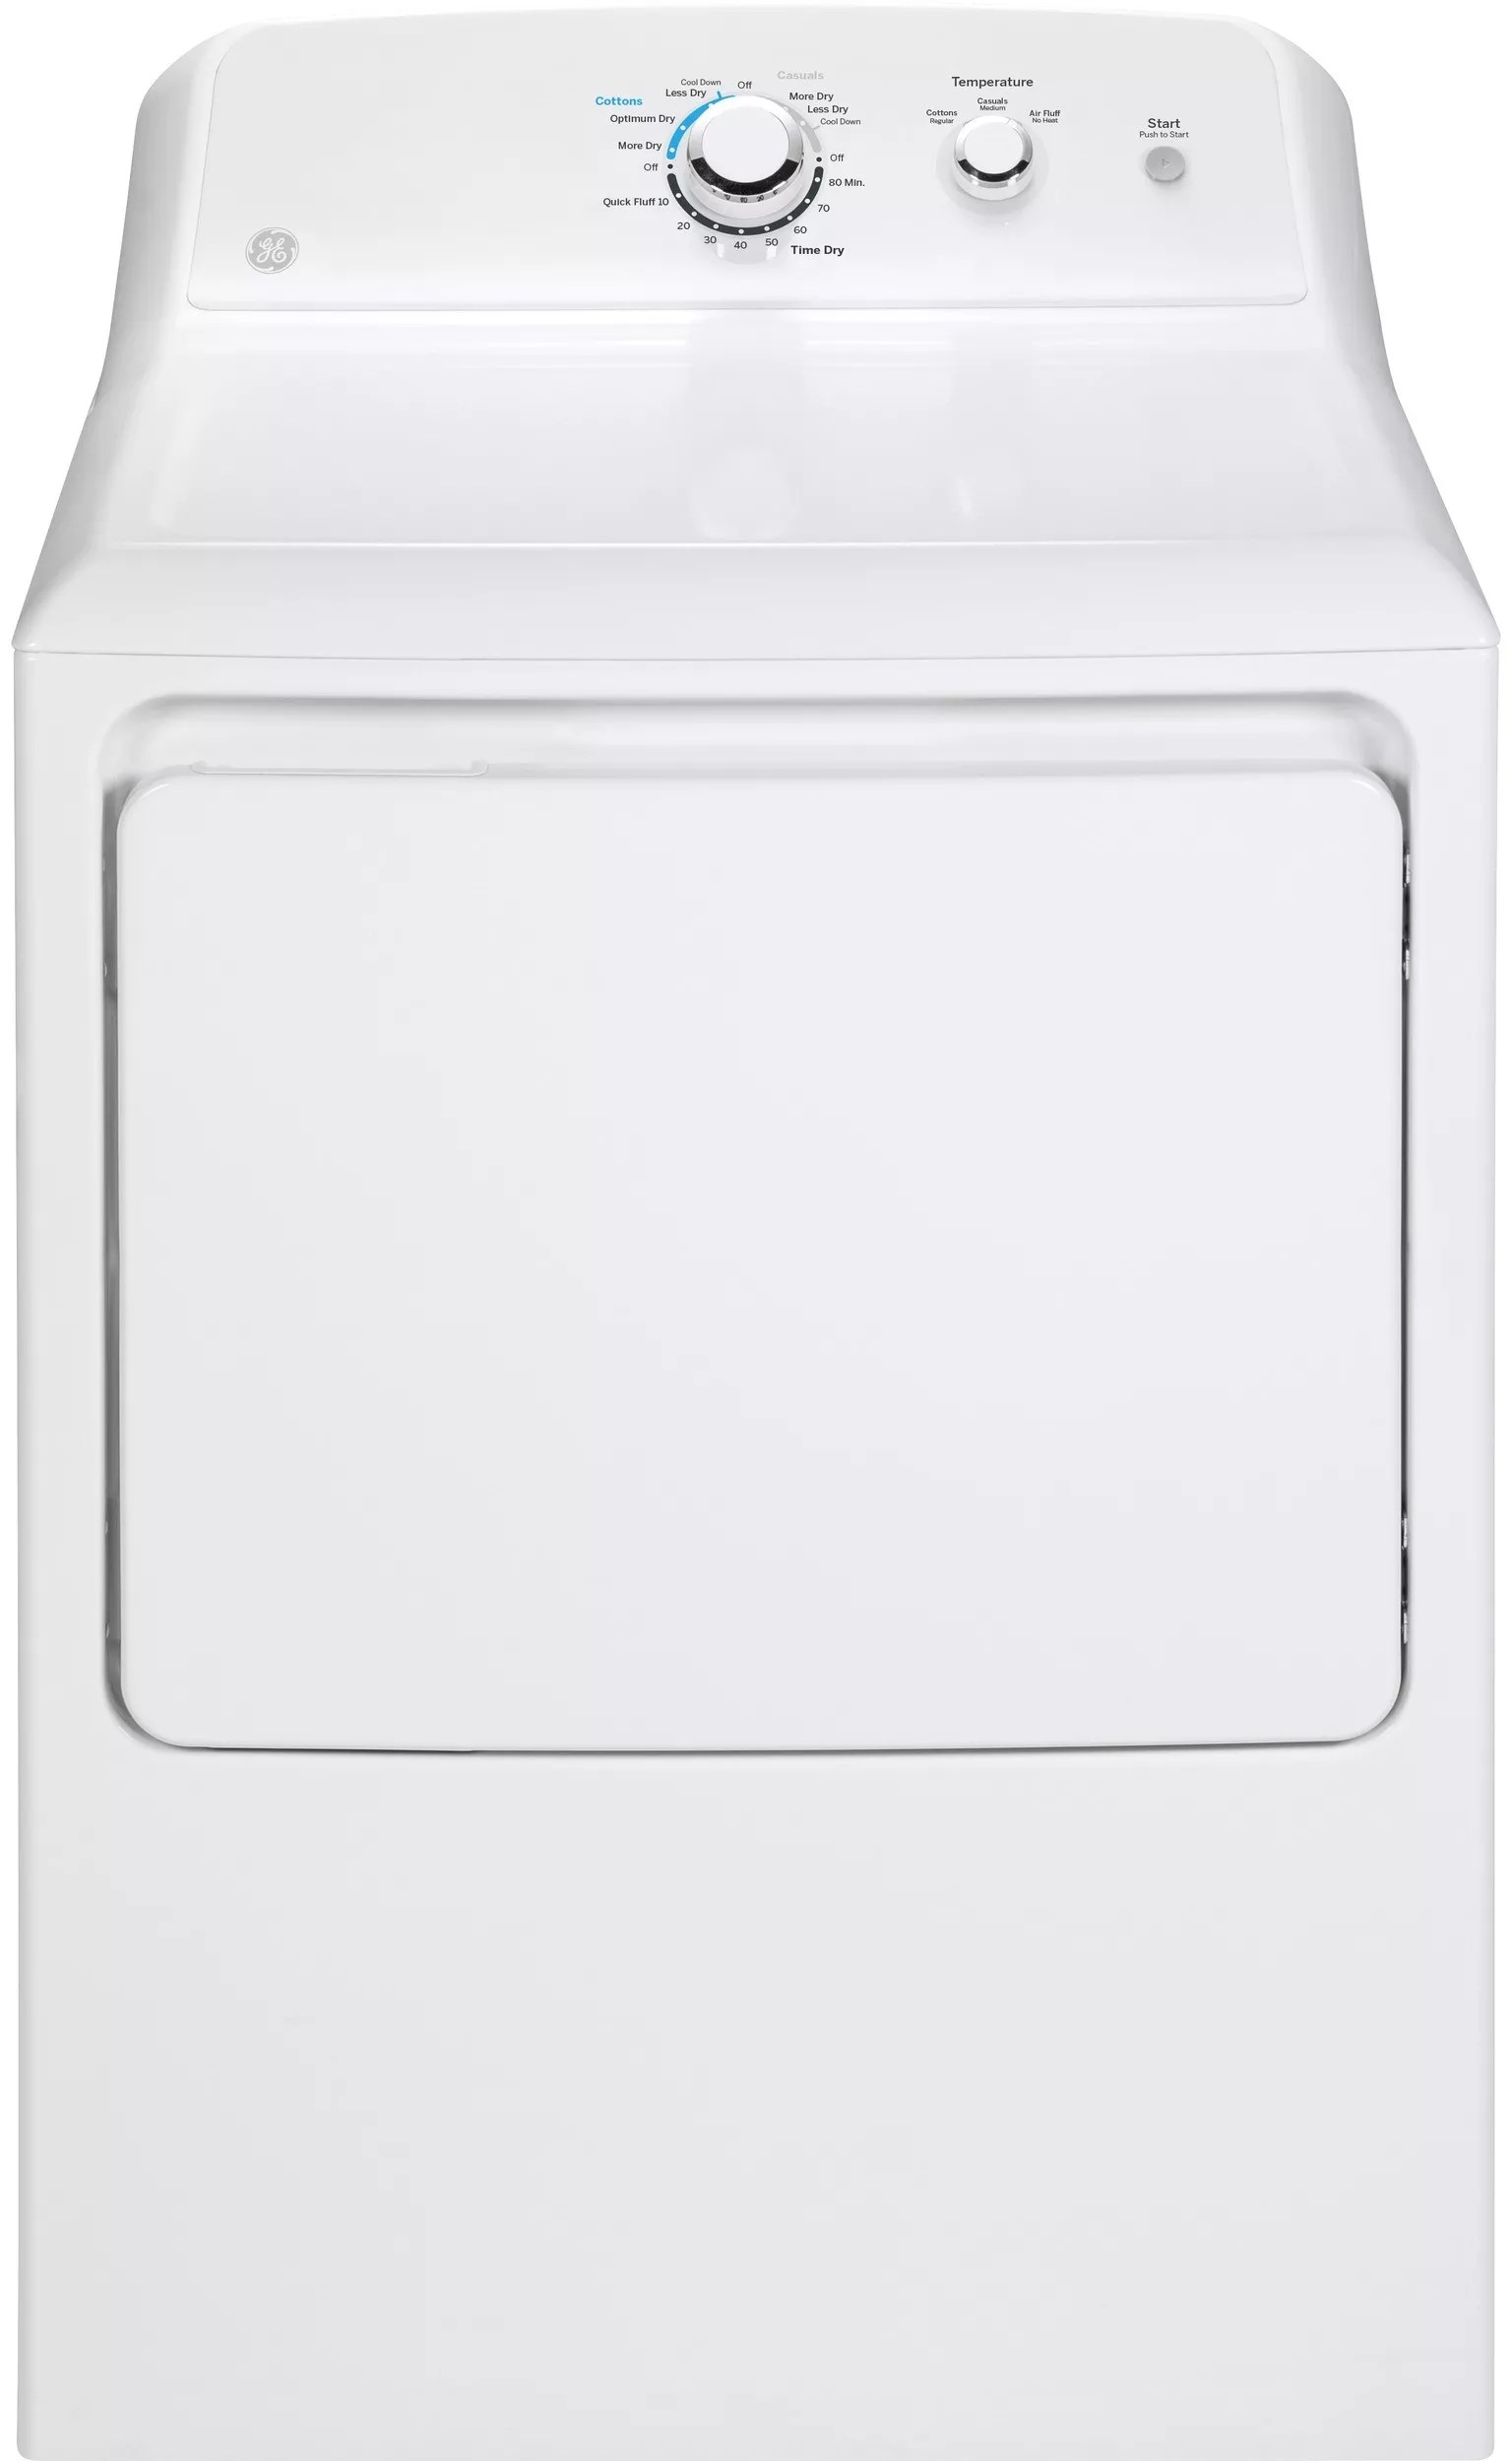 GE GTW330ASKWW 27 Inch 3.8 cu. ft. Top Load Washer with 11